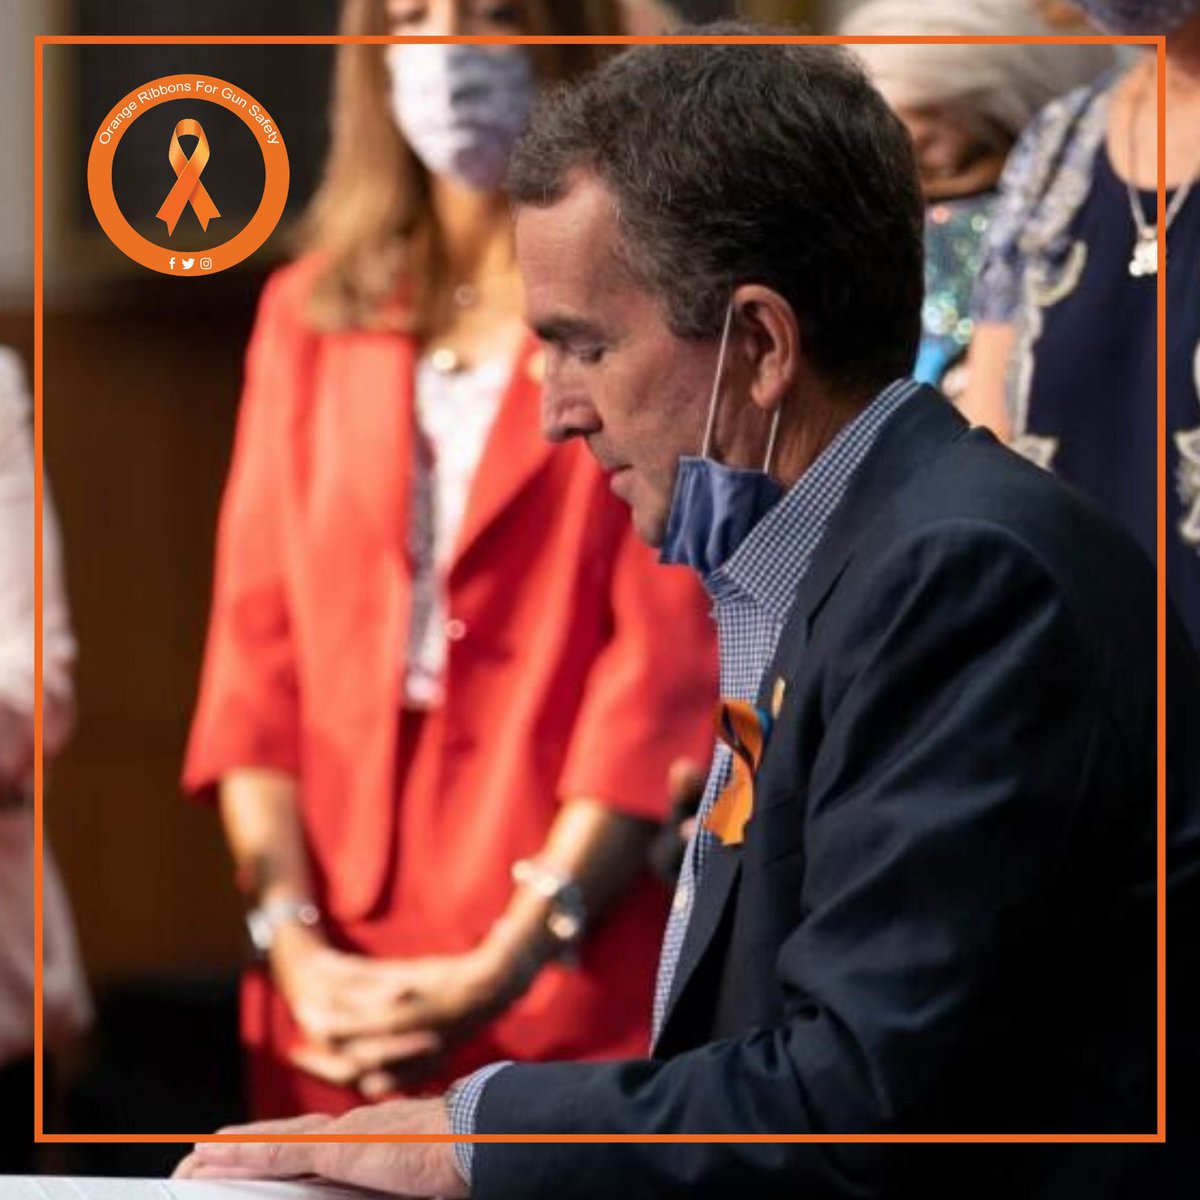 @GovernorVA @RalphNortham on Thursday signed a series of gun safety laws into effect including new measures to require background checks on all gun sales and establish an Extreme Risk Protective Order. More at https://t.co/QKo5cW7ojf.   #OrangeRibbonsForGunSafety https://t.co/qyc1ianL2o